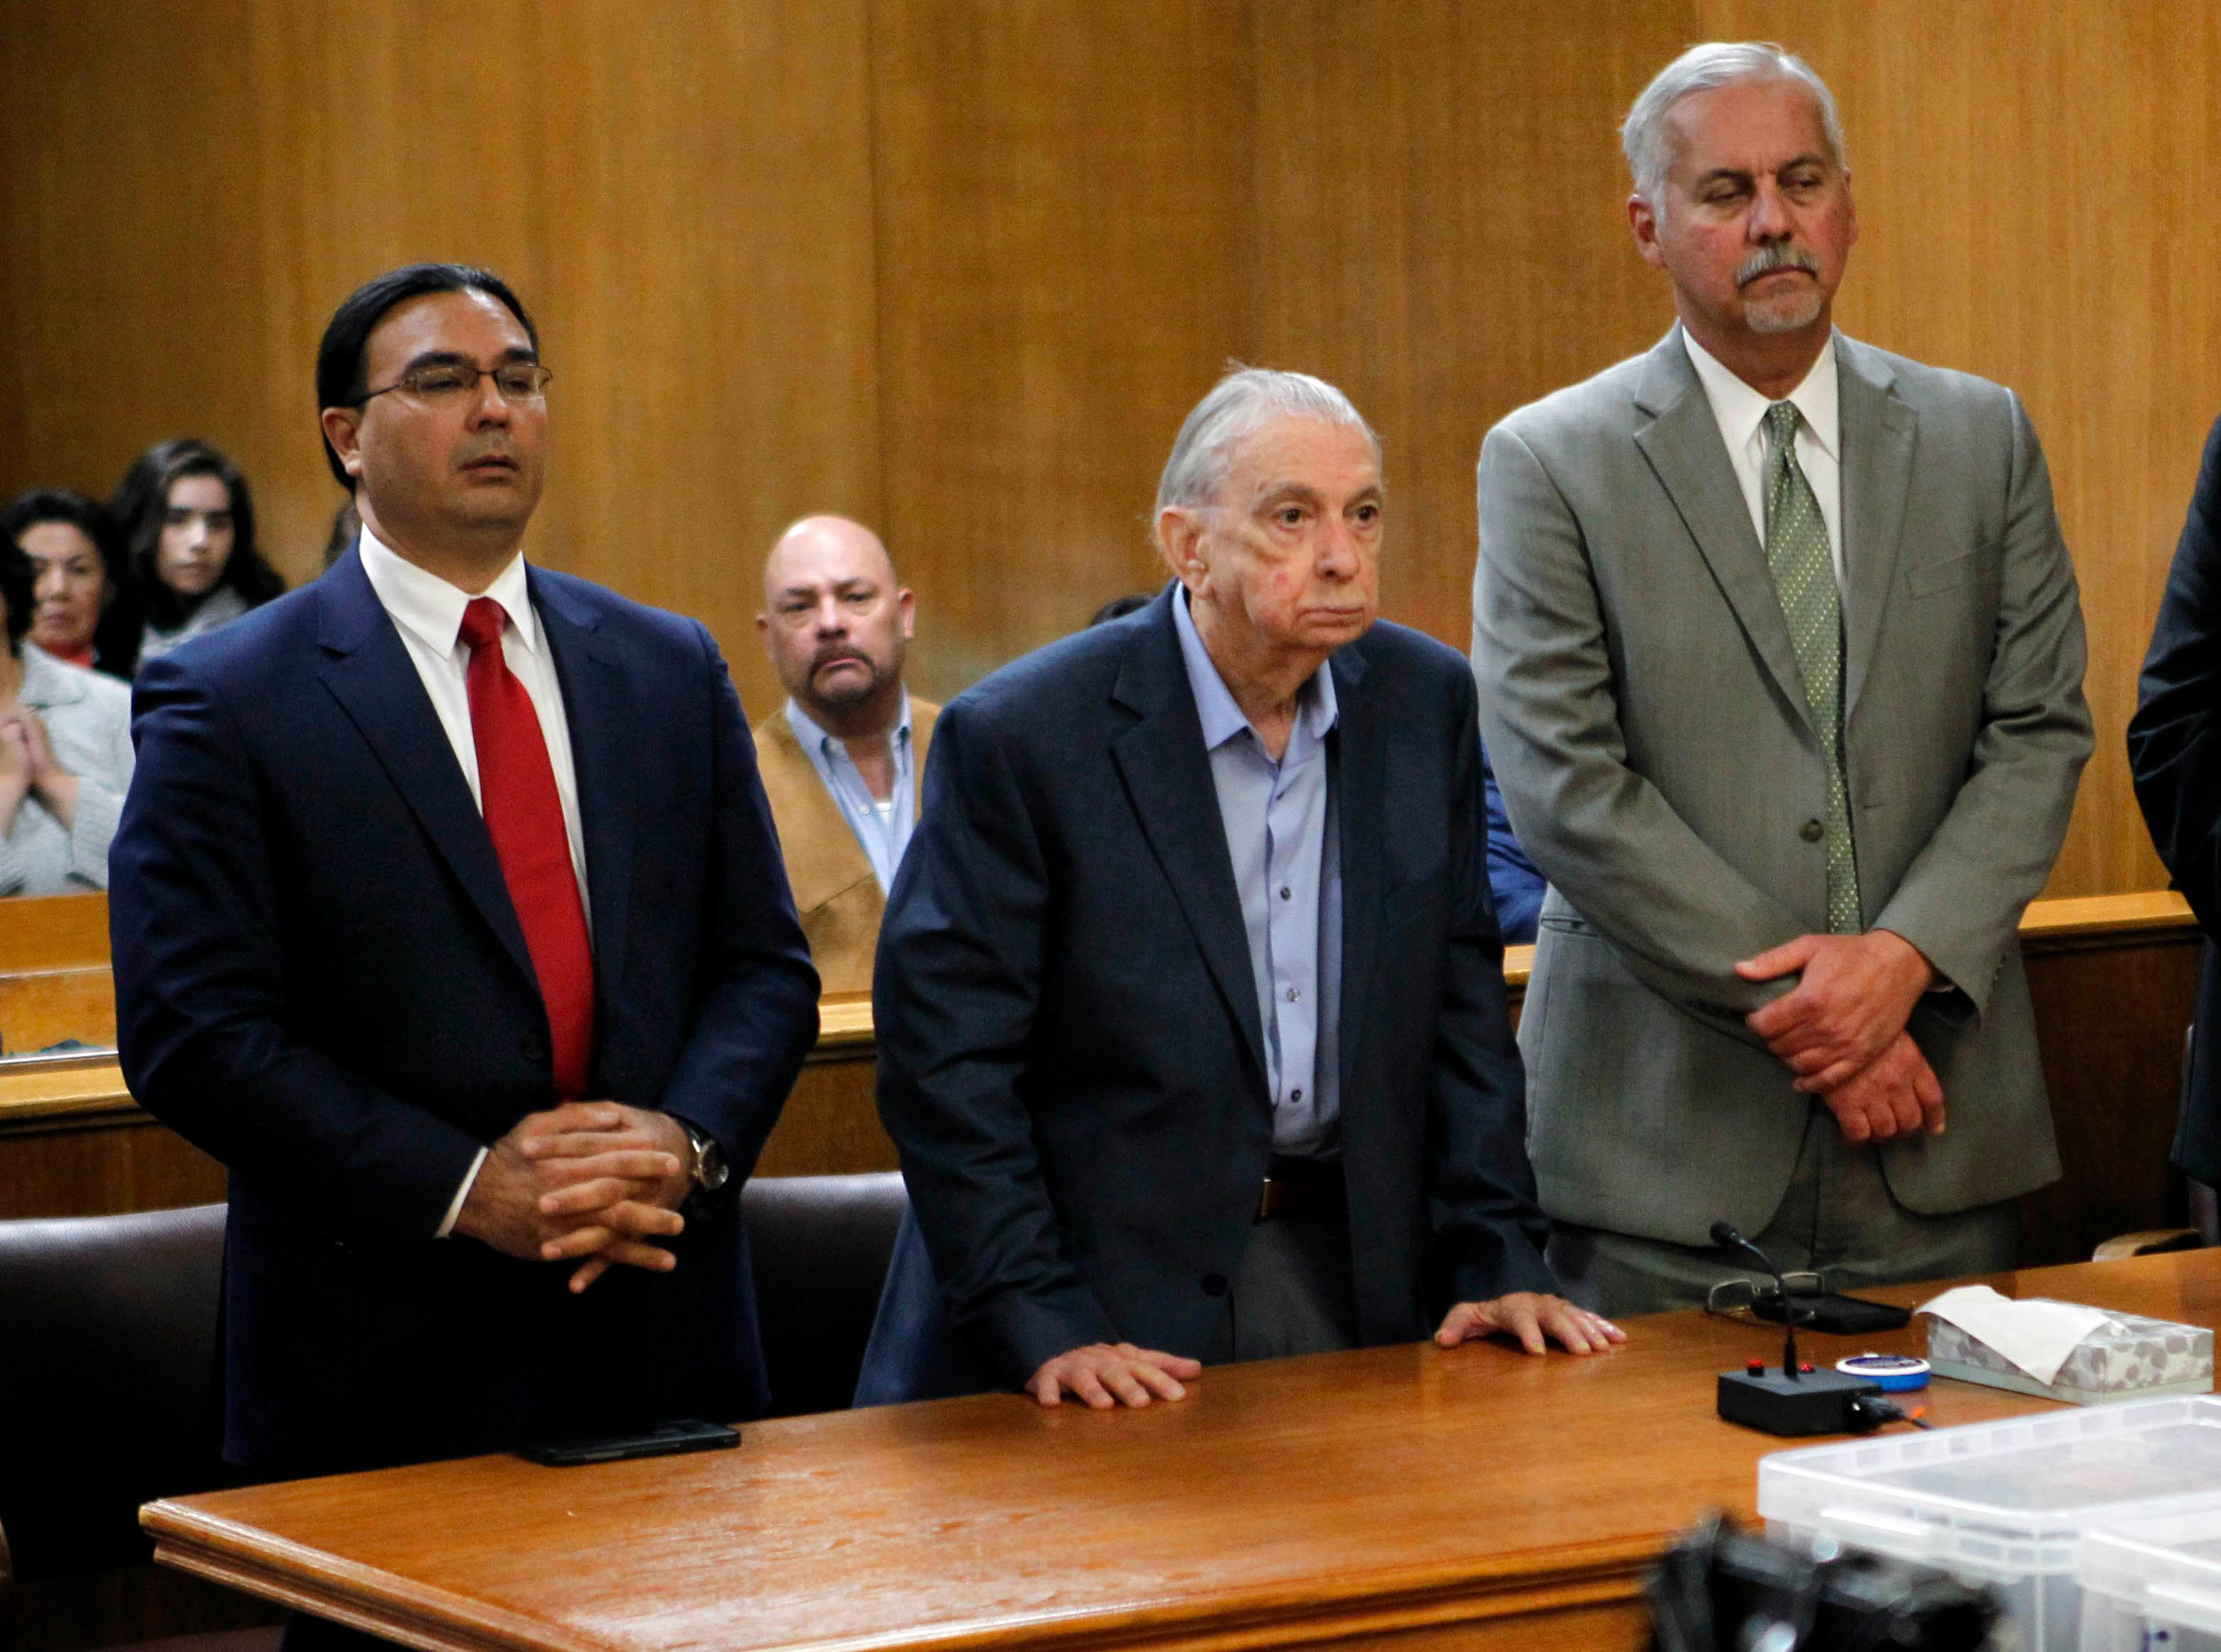 John Bernard Feit, center, listens to the announcement of a guilty verdict in his trial for the 1960 murder of Irene Garza as his lawyers, O. Rene Flores, left, and A. Ricardo Flores stand beside him in the 92nd state District Court Thursday, December 7, 2017, at the Hidalgo County Courthouse in Edinburg. (Nathan Lambrecht/The Monitor/Pool)